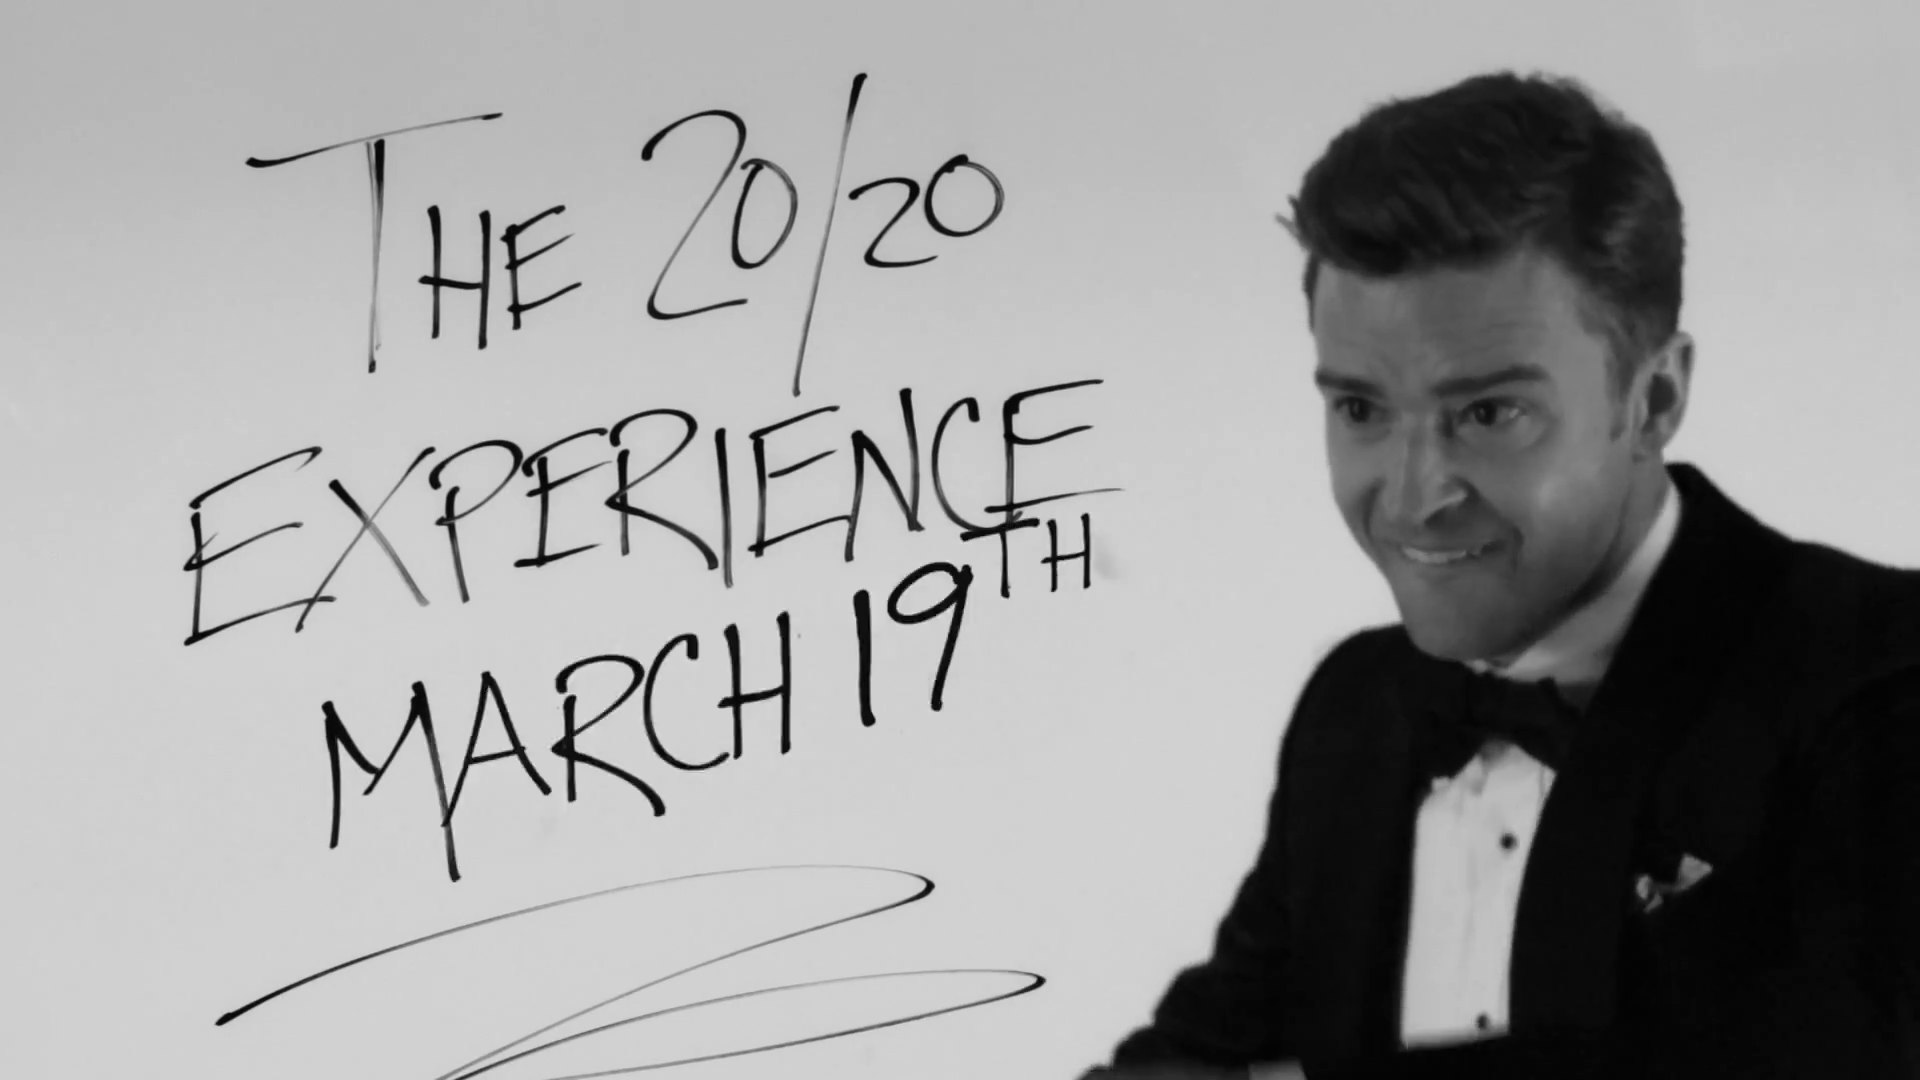 Justin Timberlake The 2020 Experience Album Hd Wallpaper In